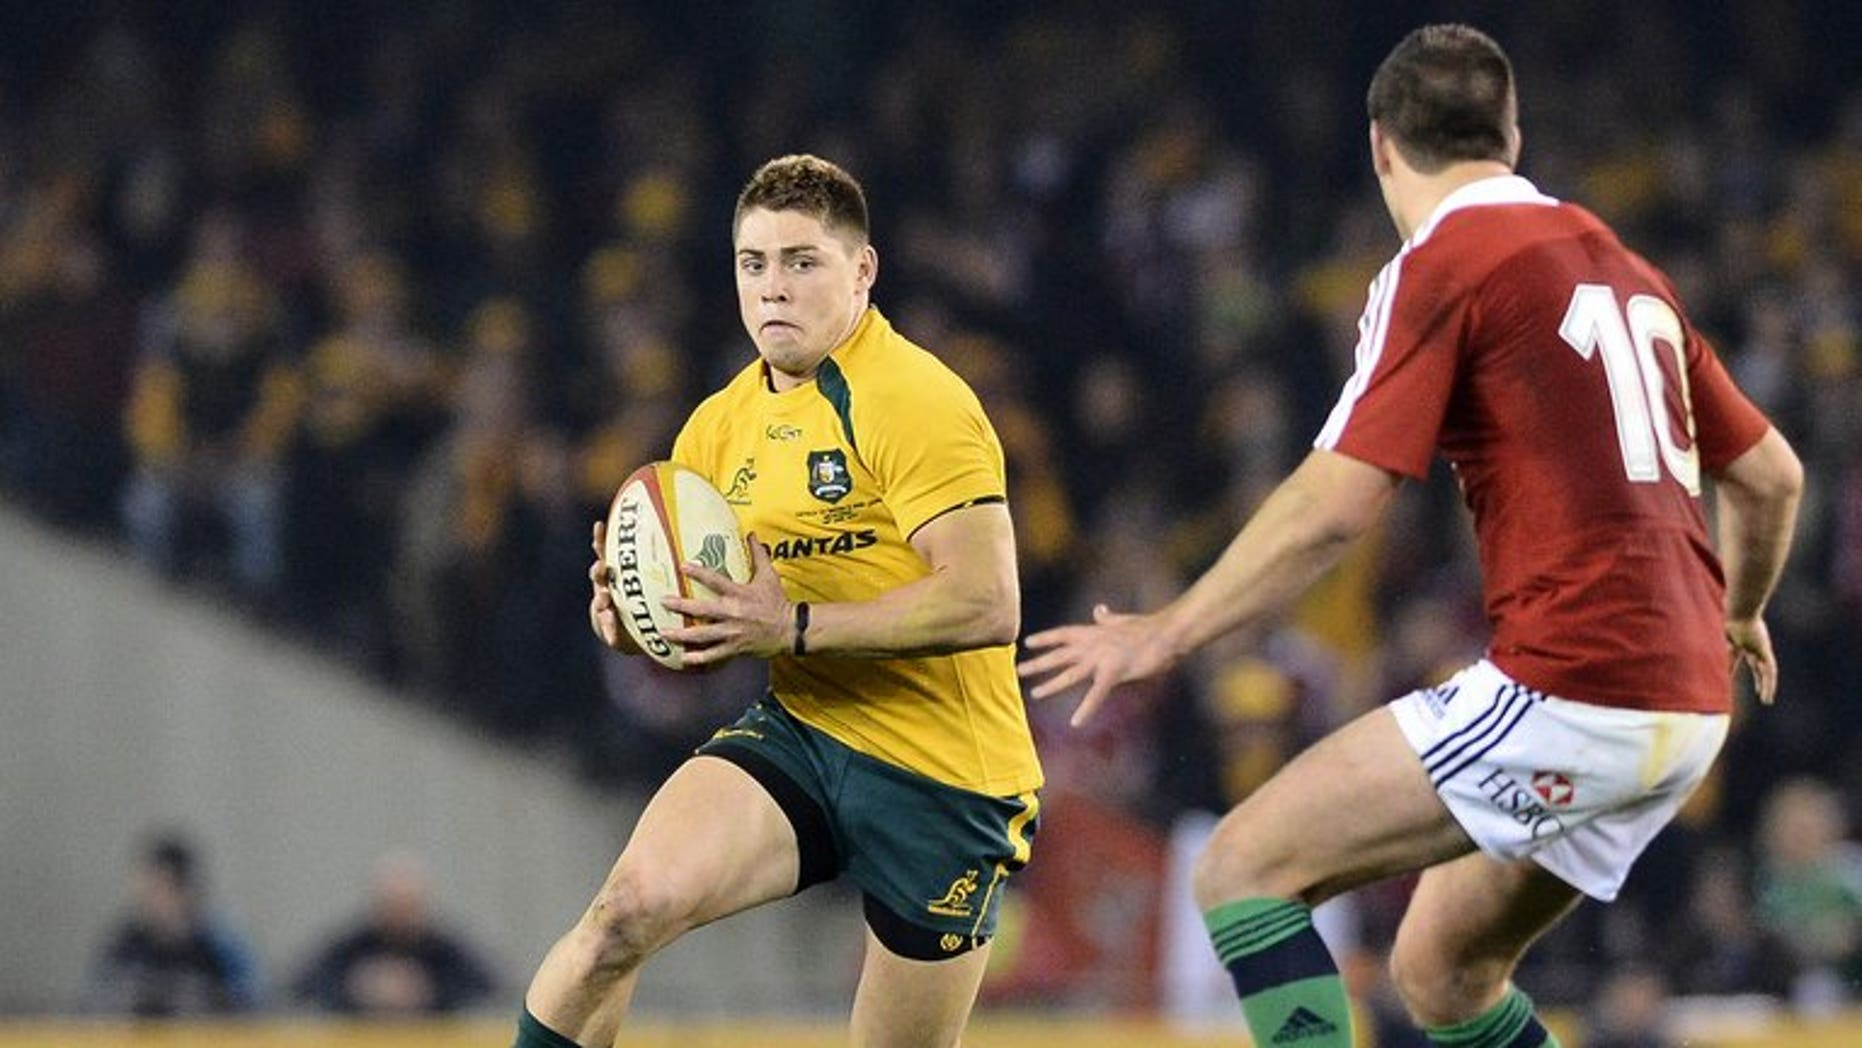 James O'Connor of Australia runs with the ball during the second Test against the British and Irish Lions on June 29, 2013. Australia won the match 16-15.